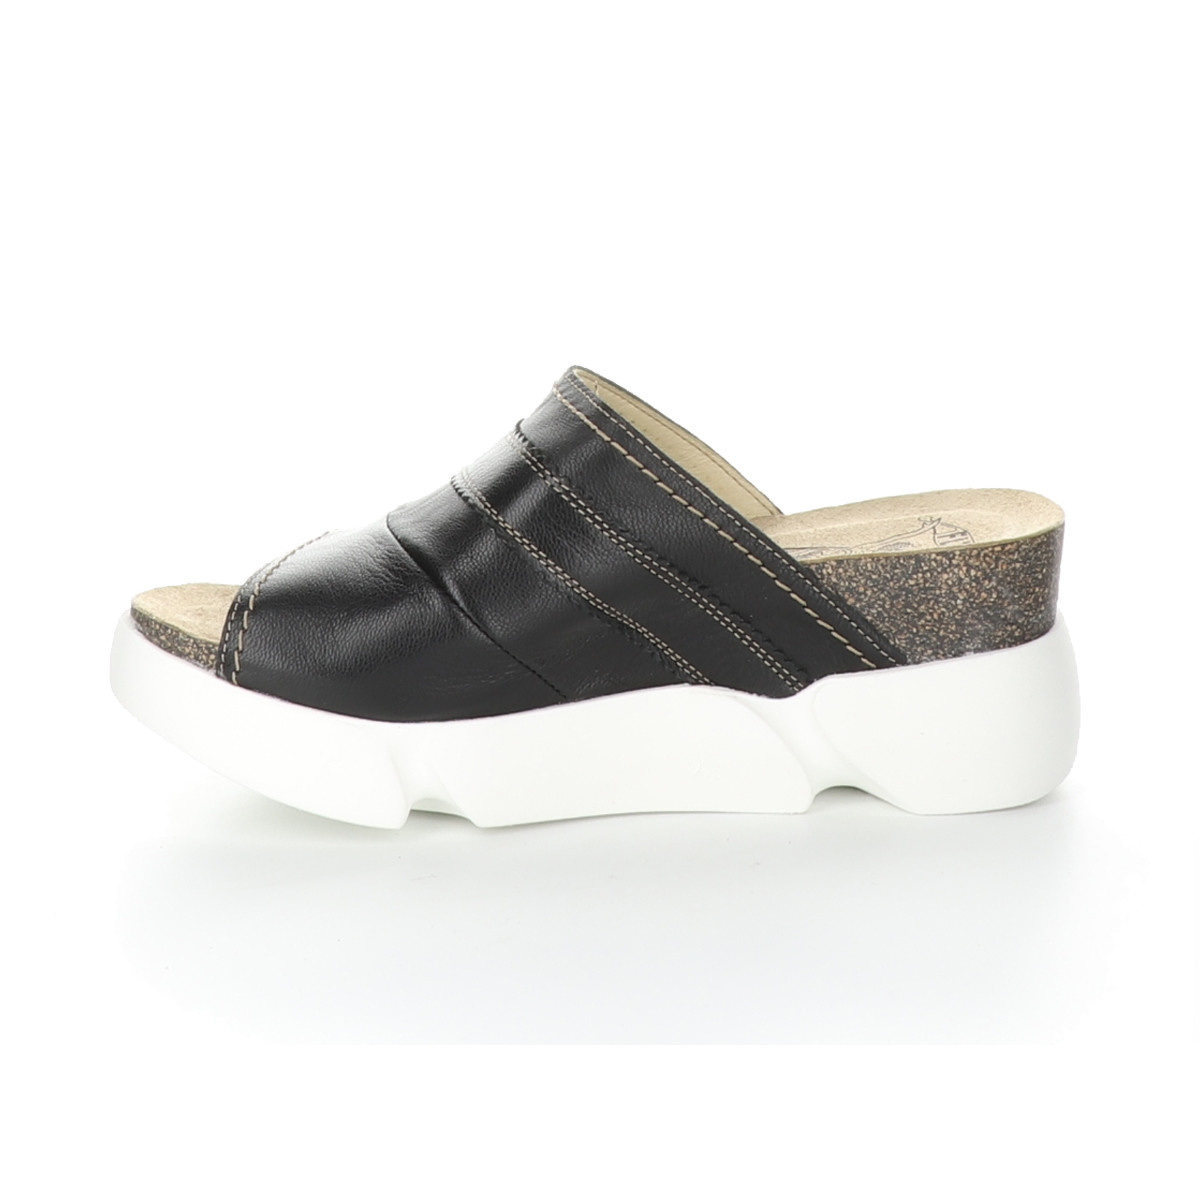 Fly London Fly London Women's Suze Mousse Black